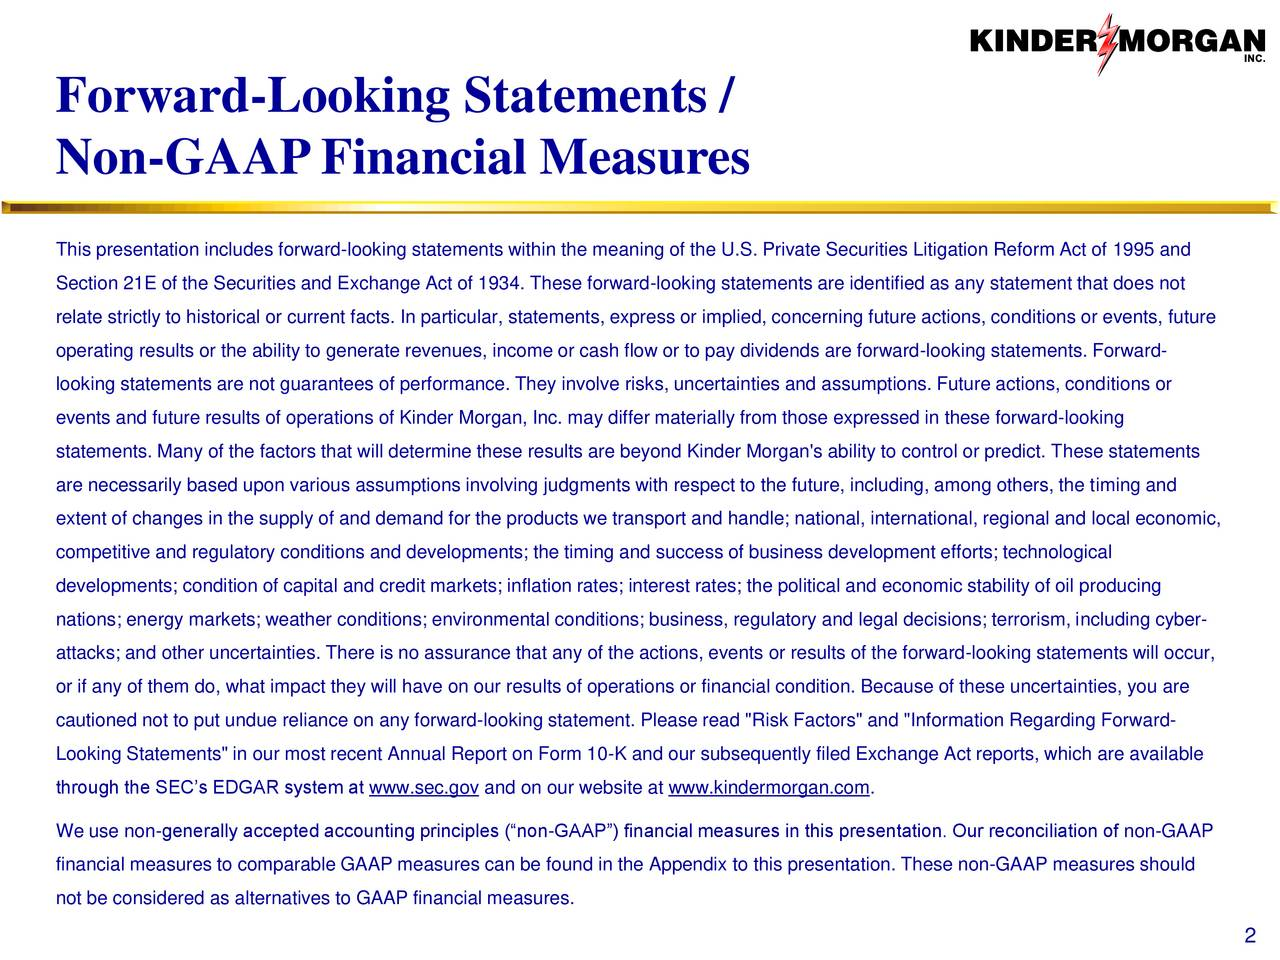 "Non-GAAPFinancial Measures This presentation includes forward-looking statements within the meaning of the U.S. Private Securities Litigation Reform Act of 1995 and Section 21E of the Securities and Exchange Act of 1934. These forward-looking statements are identified as any statement that does not relate strictly to historical or current facts. In particular, statements, express or implied, concerning future actions, conditions or events, future operating results or the ability to generate revenues, income or cash flow or to pay dividends are forward-looking statements. Forward- looking statements are not guarantees of performance. They involve risks, uncertainties and assumptions. Future actions, conditions or events and future results of operations of Kinder Morgan, Inc. may differ materially from those expressed in these forward-looking statements. Many of the factors that will determine these results are beyond Kinder Morgan's ability to control or predict. These statements are necessarily based upon various assumptions involving judgments with respect to the future, including, among others, the timing and extent of changes in the supply of and demand for the products we transport and handle; national, international, regional and local economic, competitive and regulatory conditions and developments; the timing and success of business development efforts; technological developments; condition of capital and credit markets; inflation rates; interest rates; the political and economic stability of oil producing nations; energy markets; weather conditions; environmental conditions; business, regulatory and legal decisions; terrorism, including cyber- attacks; and other uncertainties. There is no assurance that any of the actions, events or results of the forward-looking statements will occur, or if any of them do, what impact they will have on our results of operations or financial condition. Because of these uncertainties, you are cautioned not to put undue reliance on any forward-looking statement. Please read ""Risk Factors"" and ""Information Regarding Forward- Looking Statements"" in our most recent Annual Report on Form 10-K and our subsequently filed Exchange Act reports, which are available through the SECs EDGAR system at www.sec.gov and on our website at www.kindermorgan.com. We use non-generally accepted accounting principles (non-GAAP) financial measures in this presentation. Our reconciliation of non-GAAP financial measures to comparable GAAP measures can be found in the Appendix to this presentation. These non-GAAP measures should not be considered as alternatives to GAAP financial measures. 2"